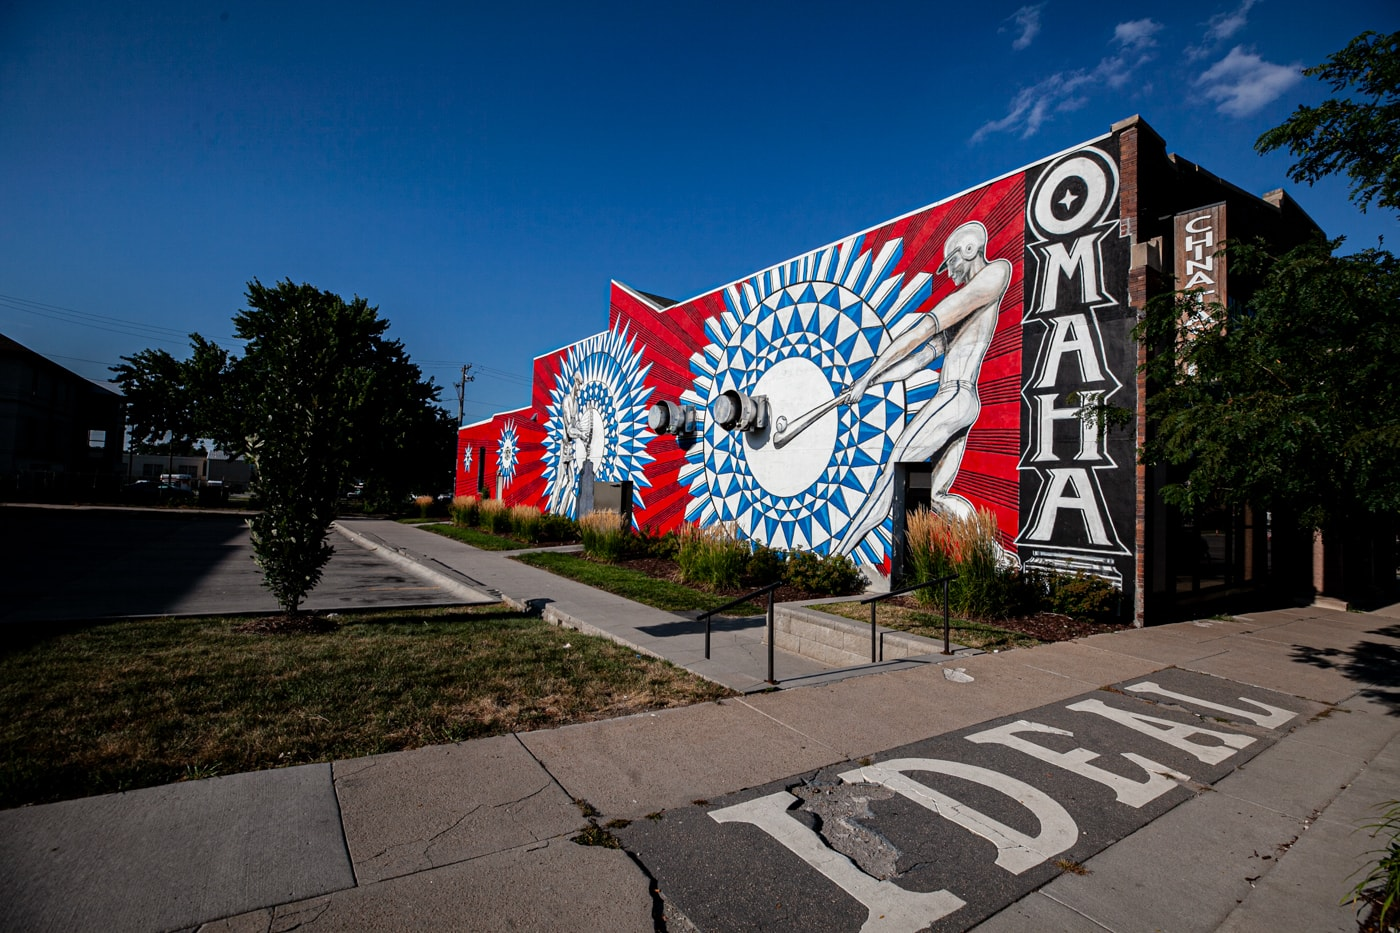 Justin Queal Home Run mural in Omaha, Nebraska - Omaha baseball mural street art